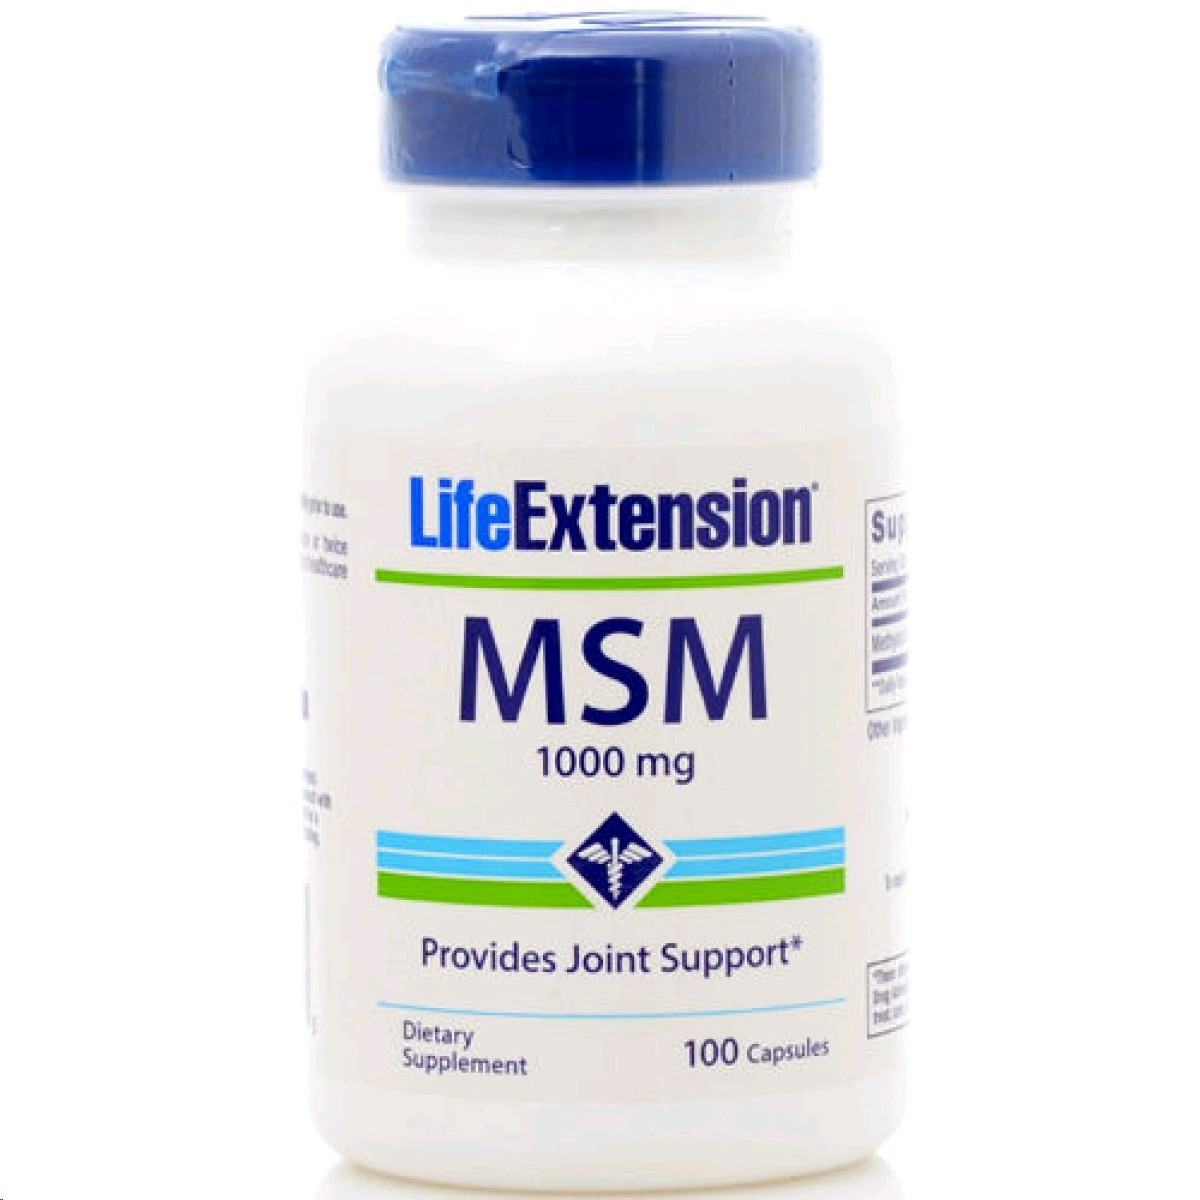 LIFE EXTENSION MSM 1000MG 100 CAPSULES